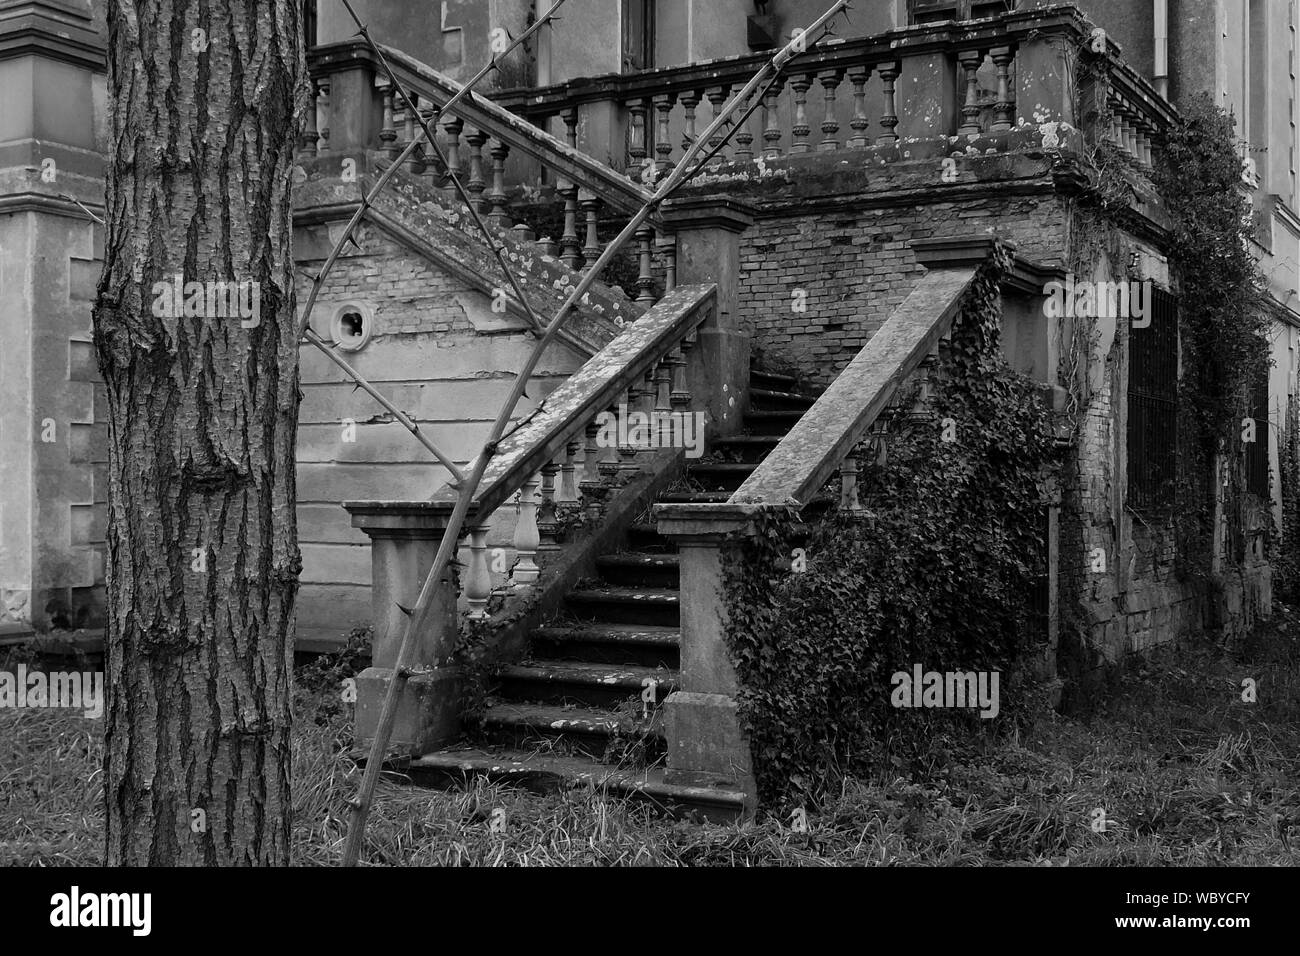 Abandoned Building Exterior High Resolution Stock Photography And Images Alamy